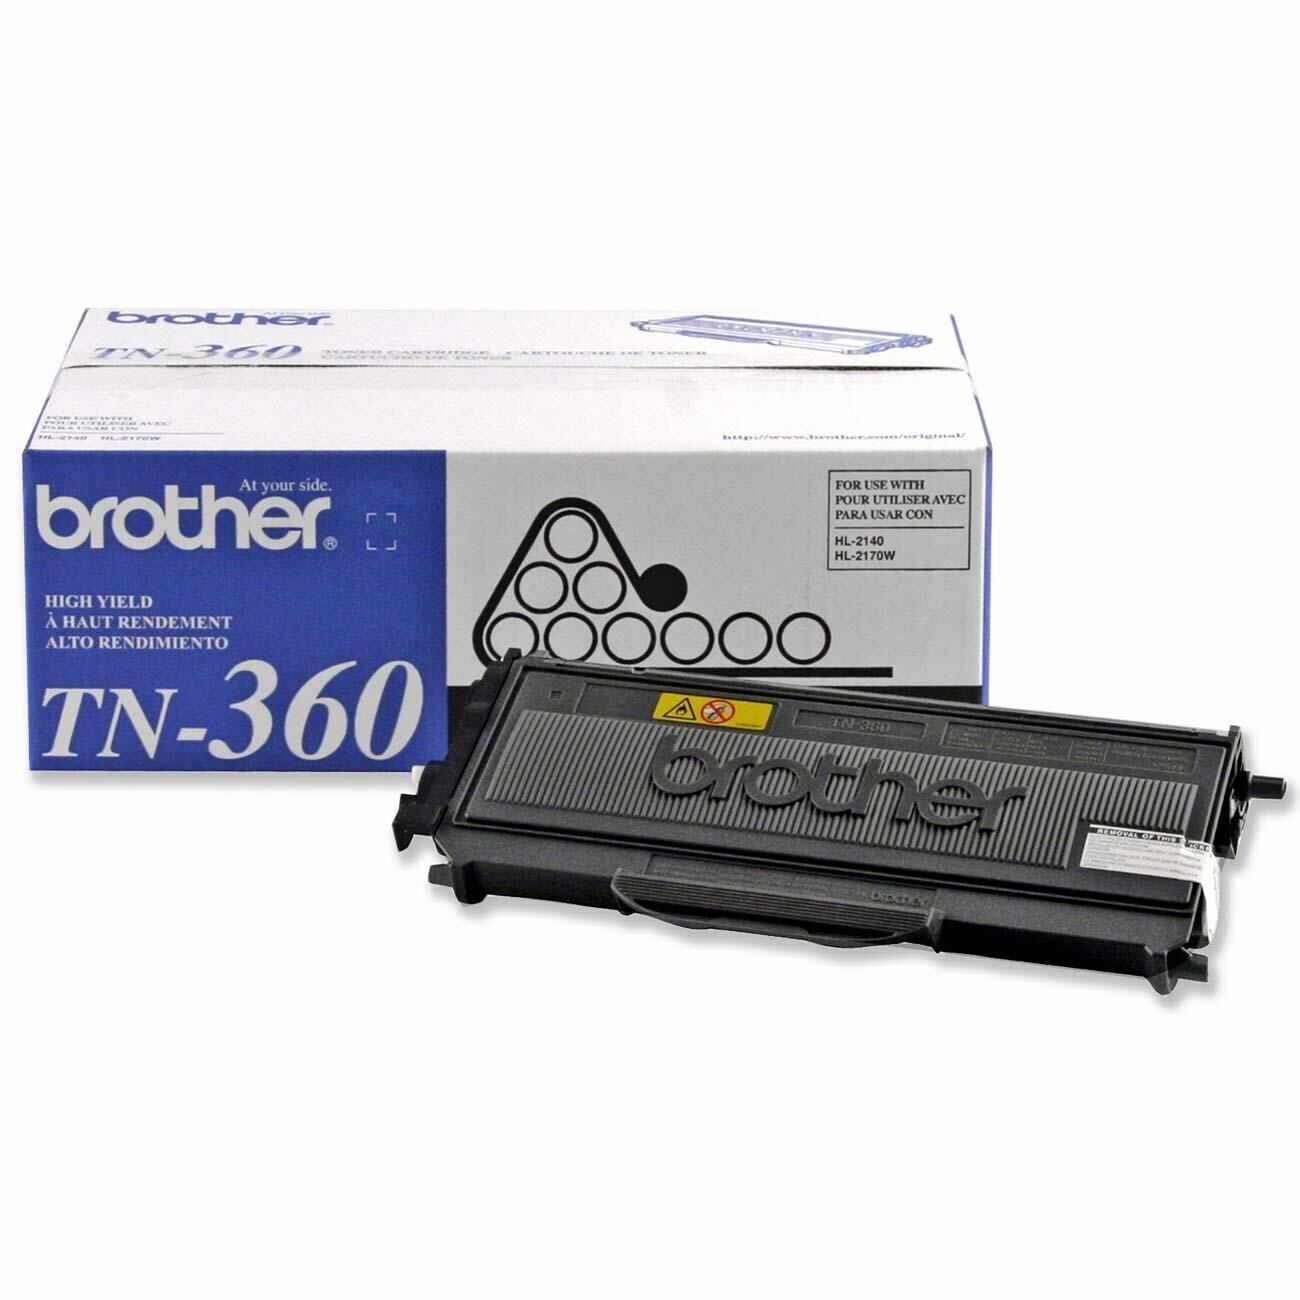 Genuine Brother Tn360 Black Toner Cartridge -2600 Page Fo...